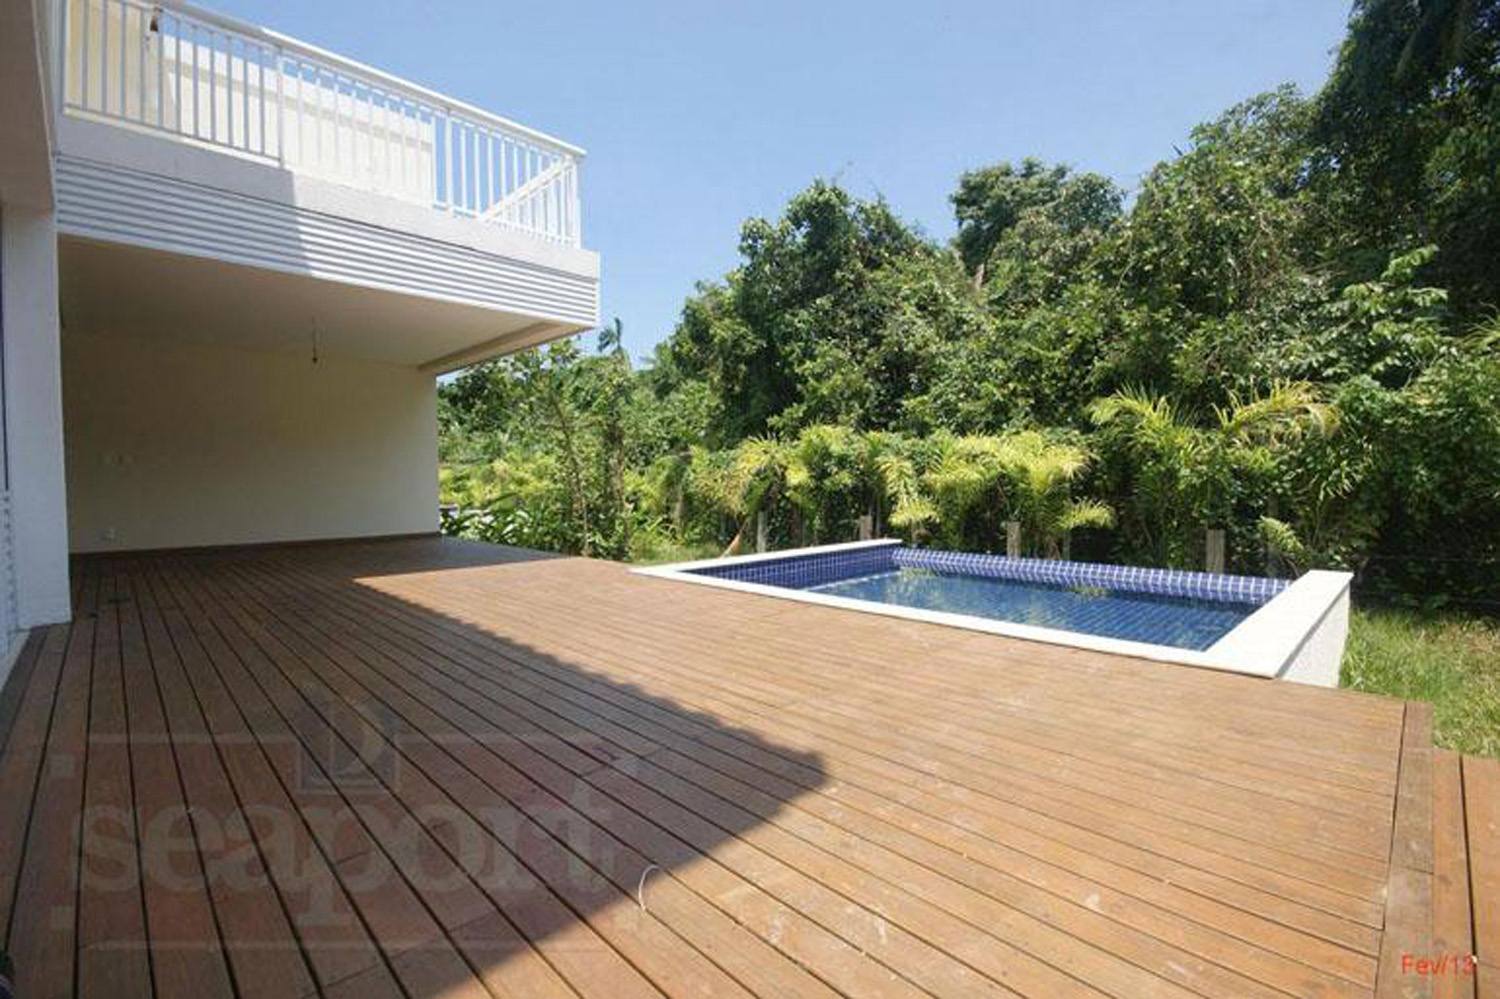 Deck e Piscina Privativa